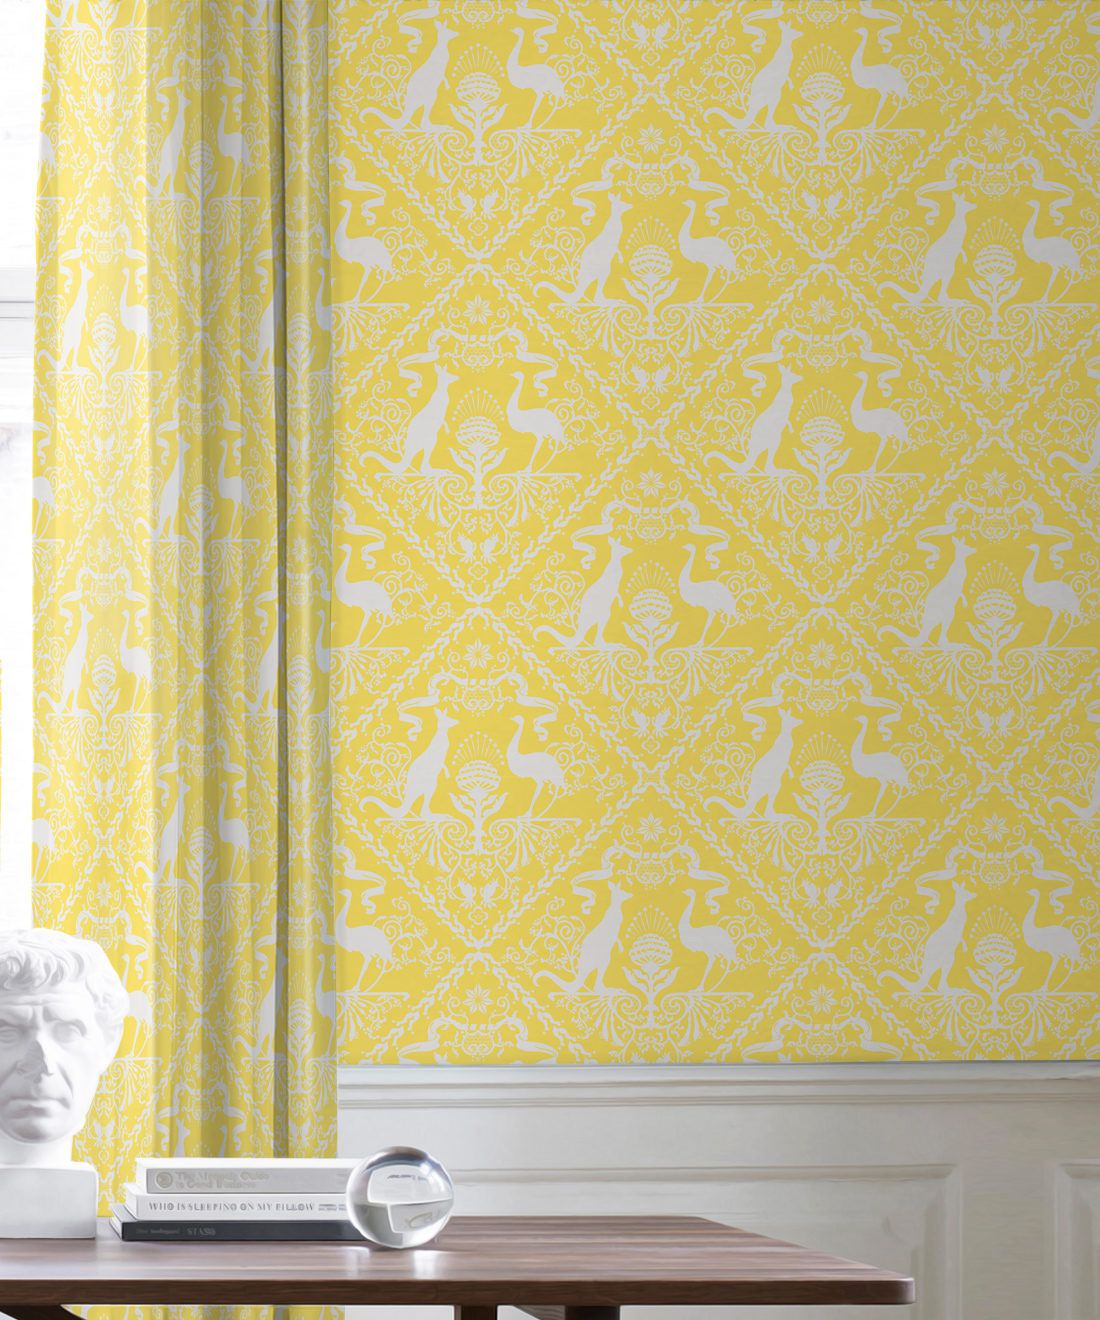 In Australia We Trust Sunshine • Australian Wallpaper • Australian Coat of Arms • Milton & King USA • Yellow Wallpaper